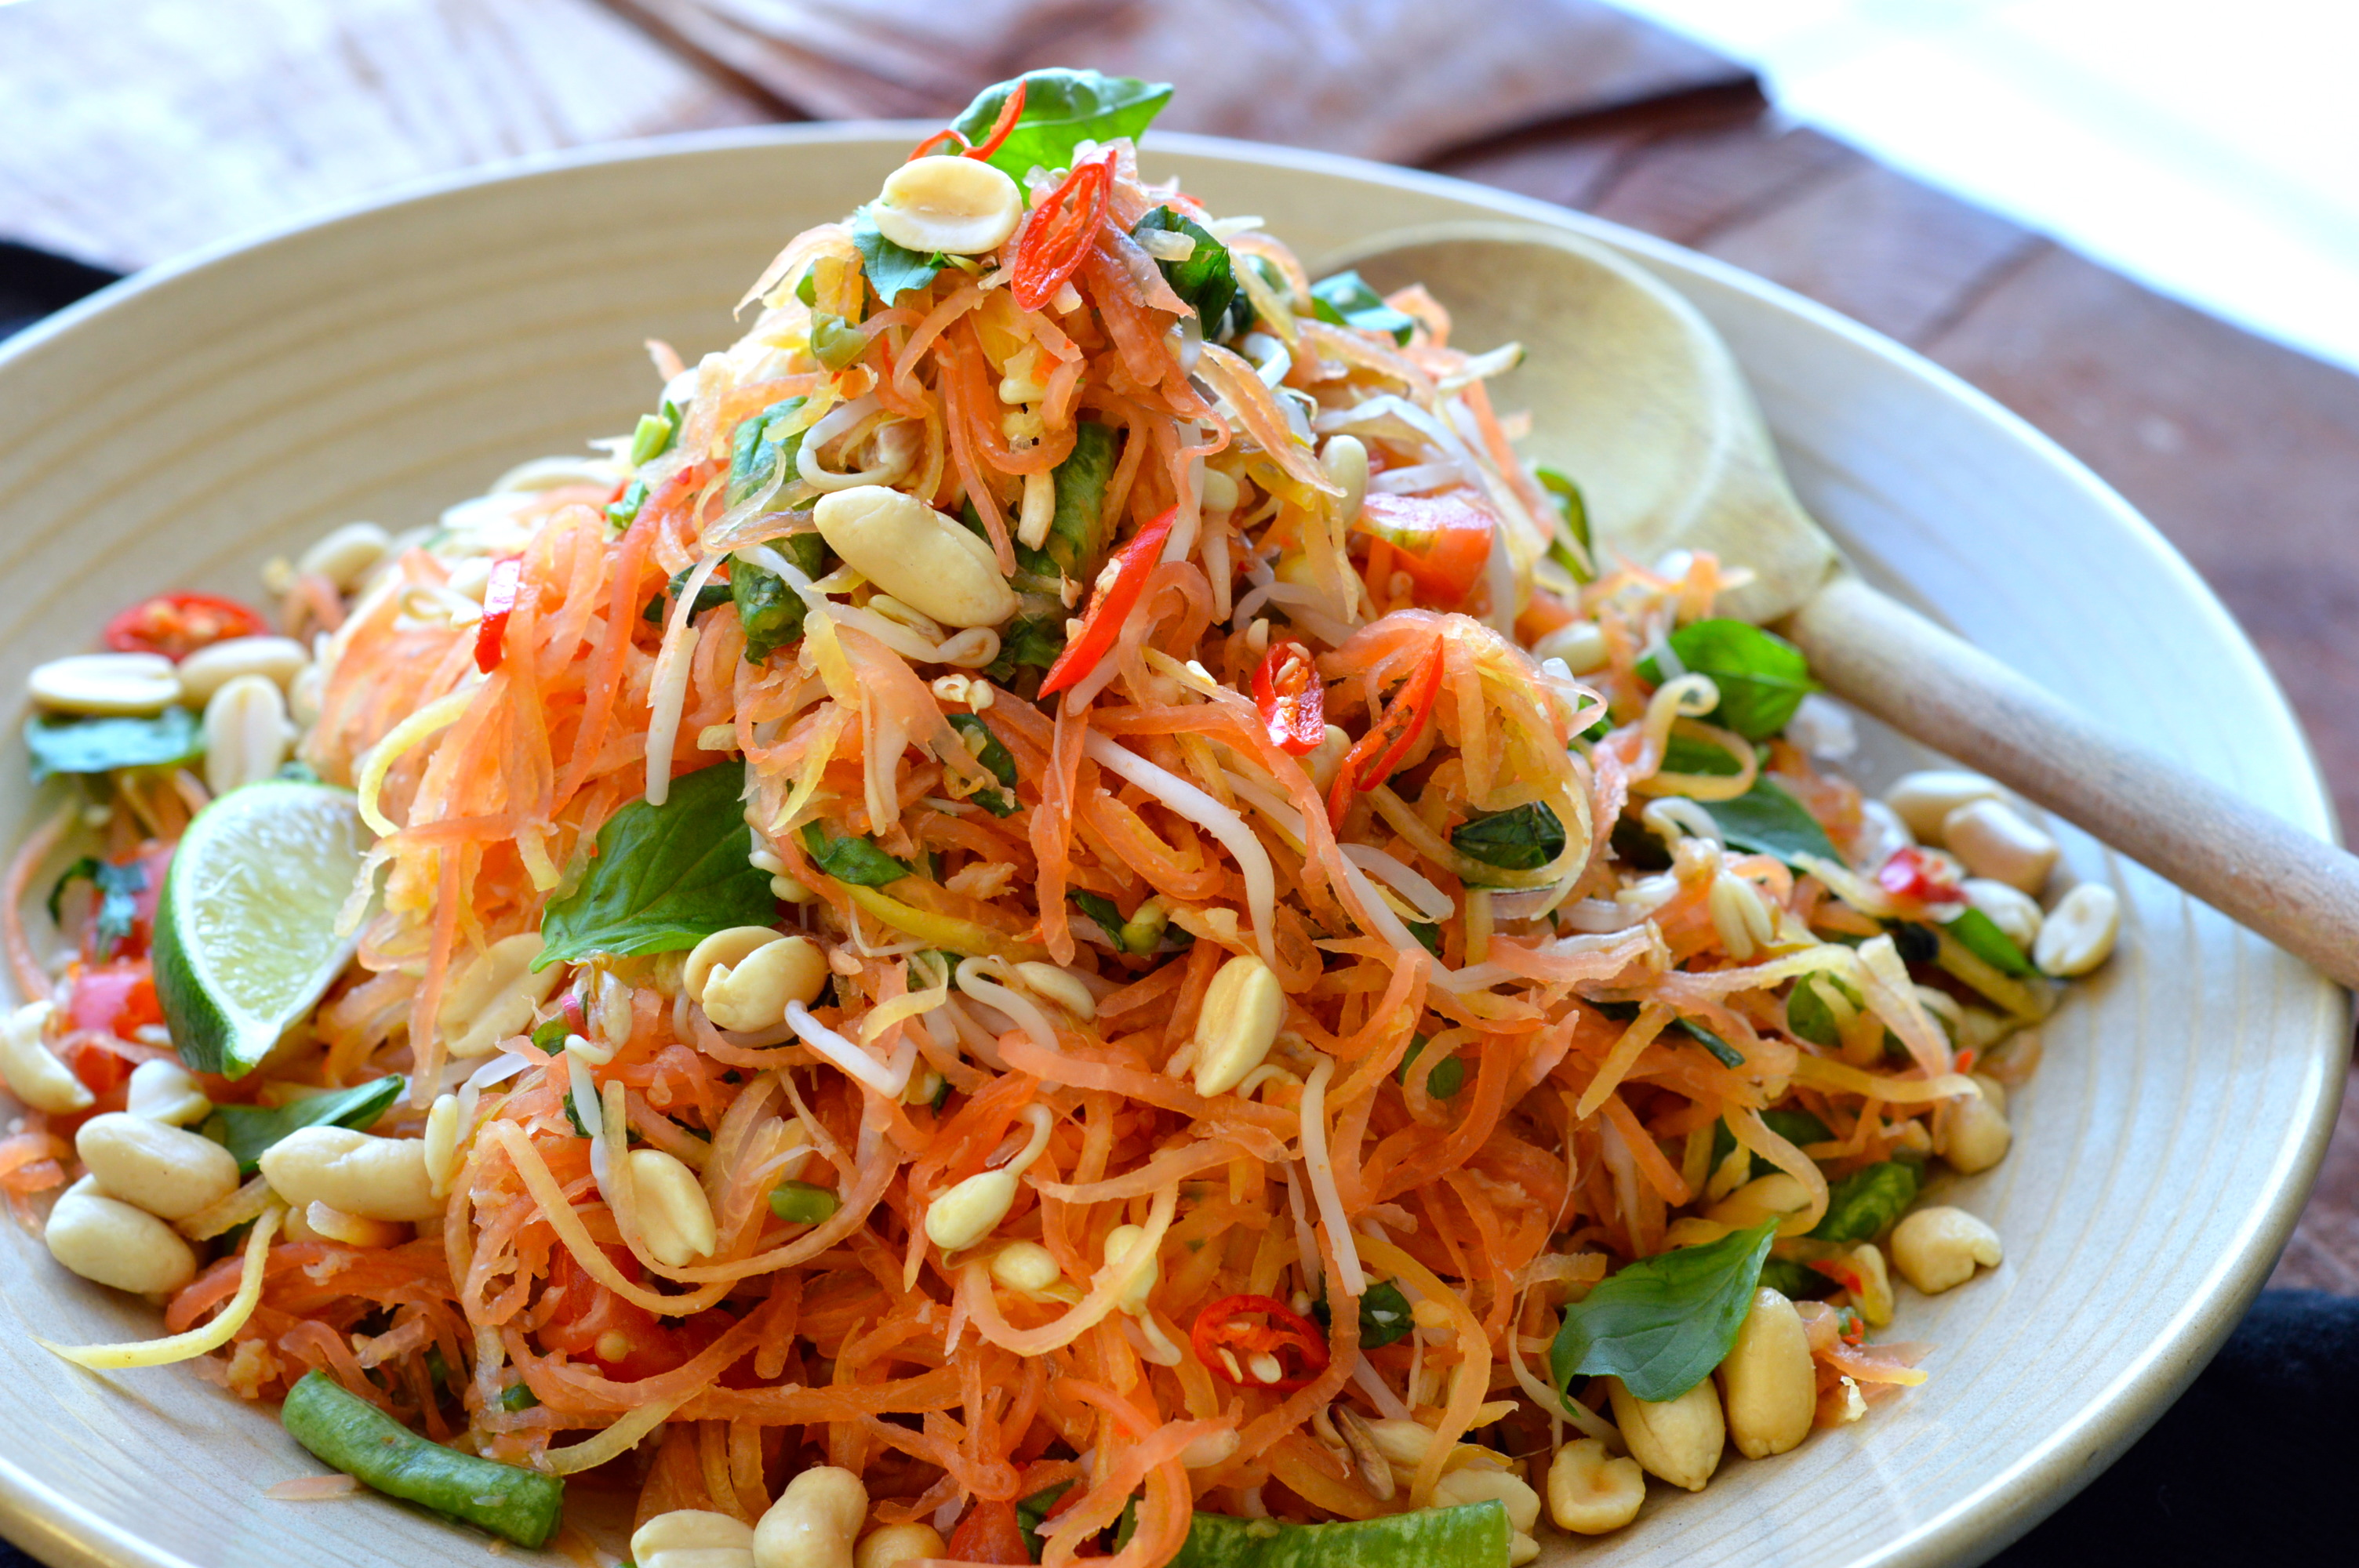 Green Papaya Salad For My Senses